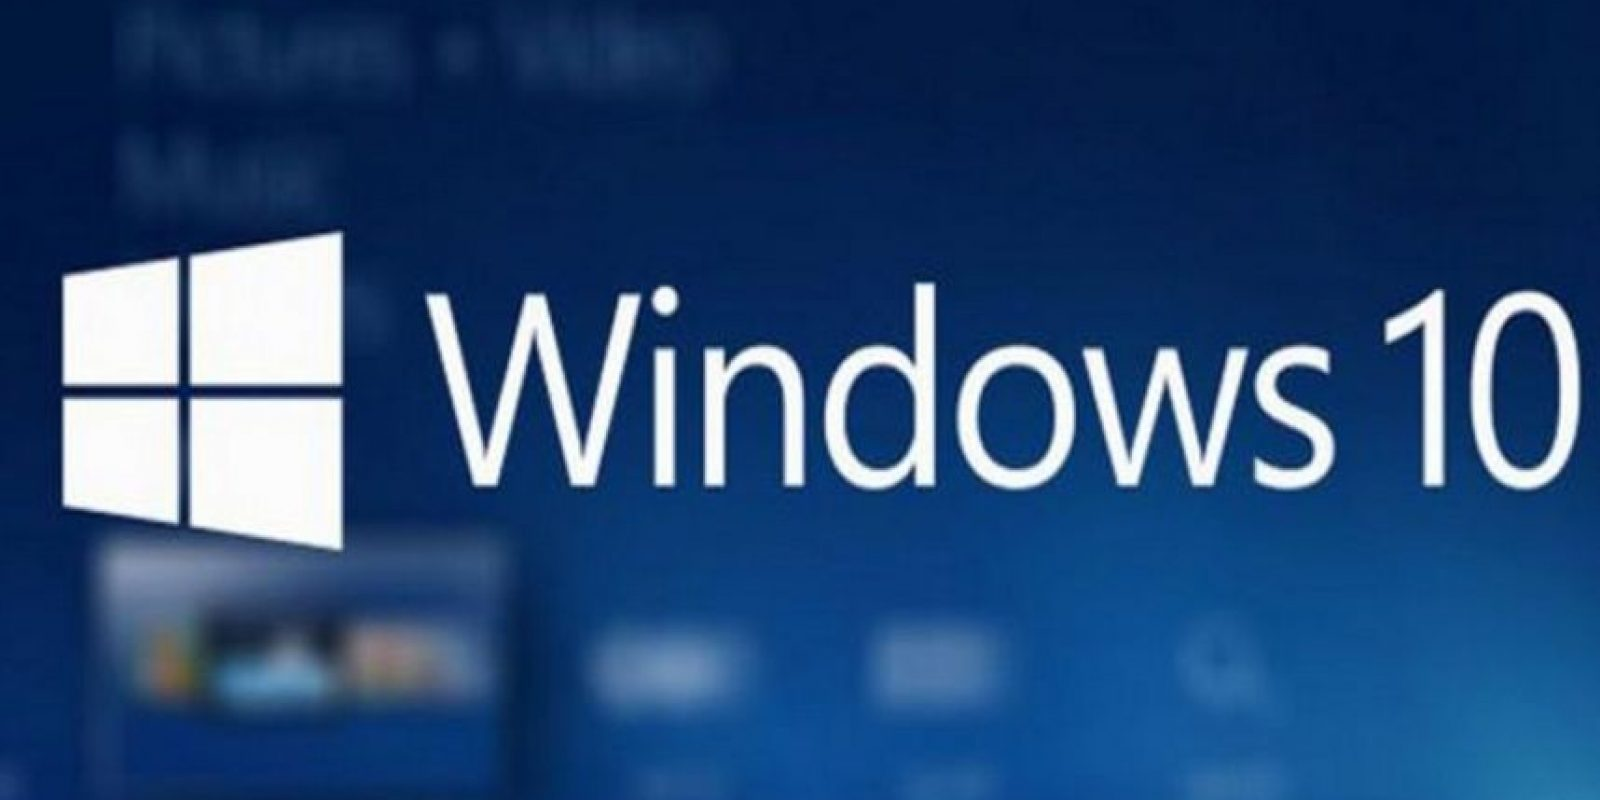 Windows 10 saldrá a la venta el 29 de julio. Foto: Microsoft Windows